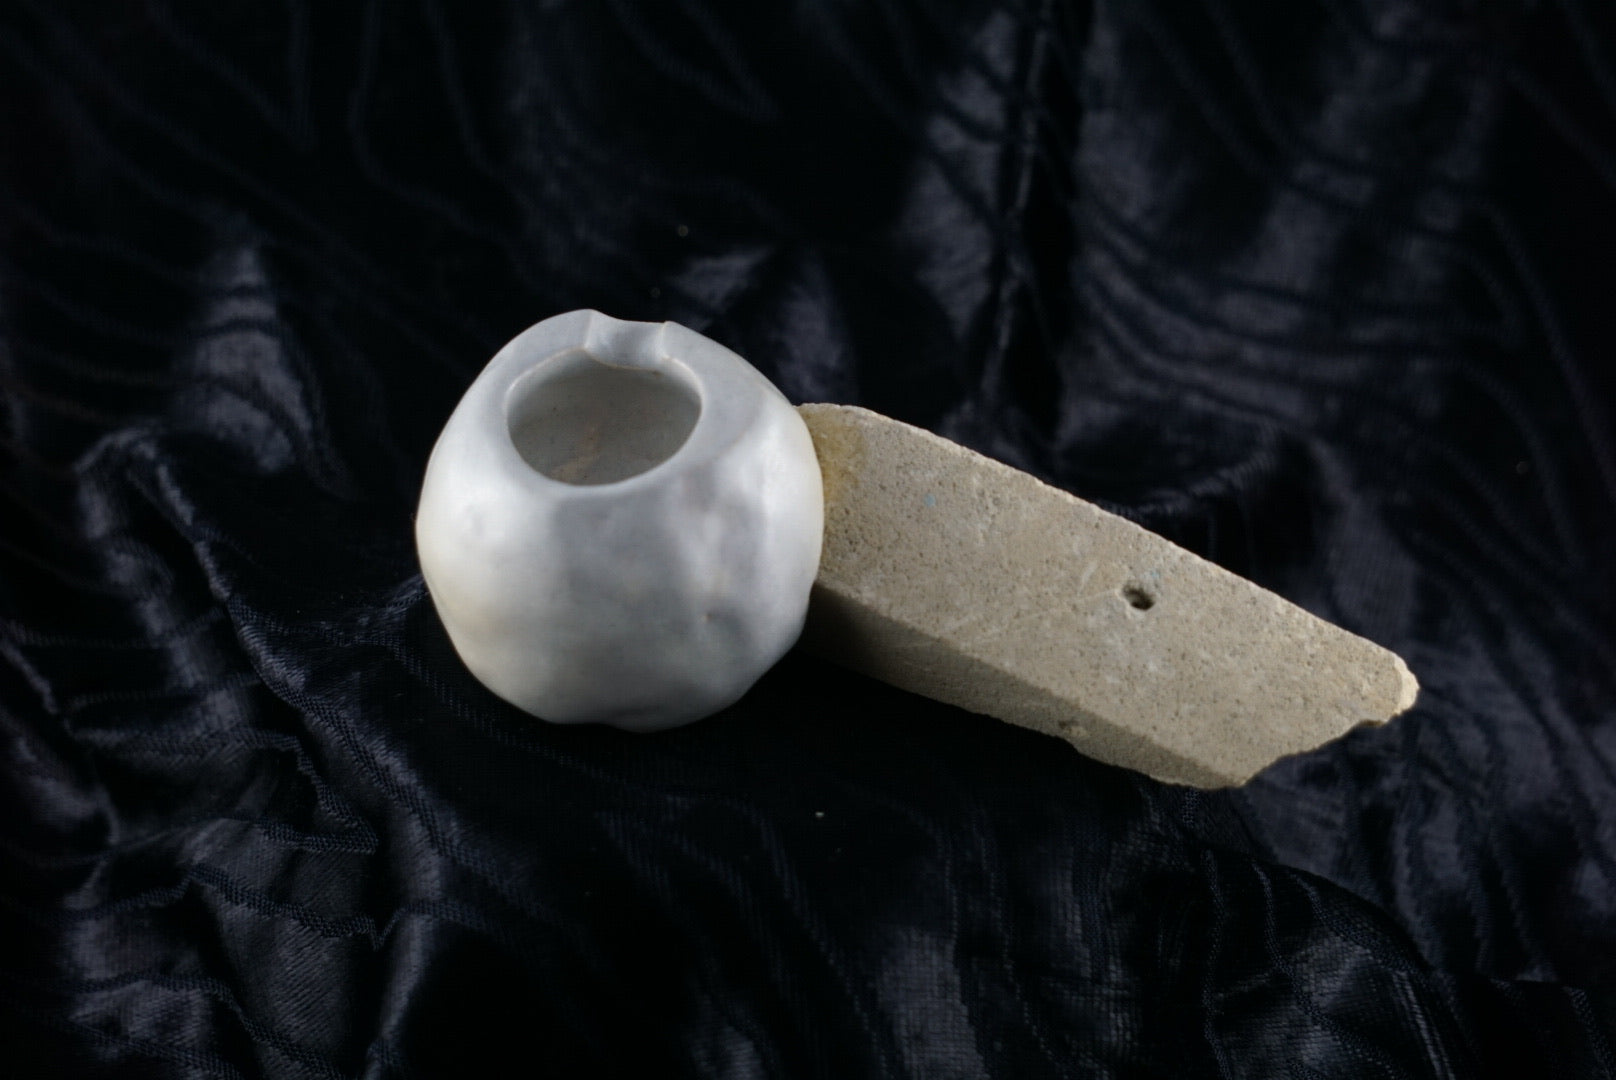 Small, handmade, grey ceramic ashtray molded around a piece of yellow brick